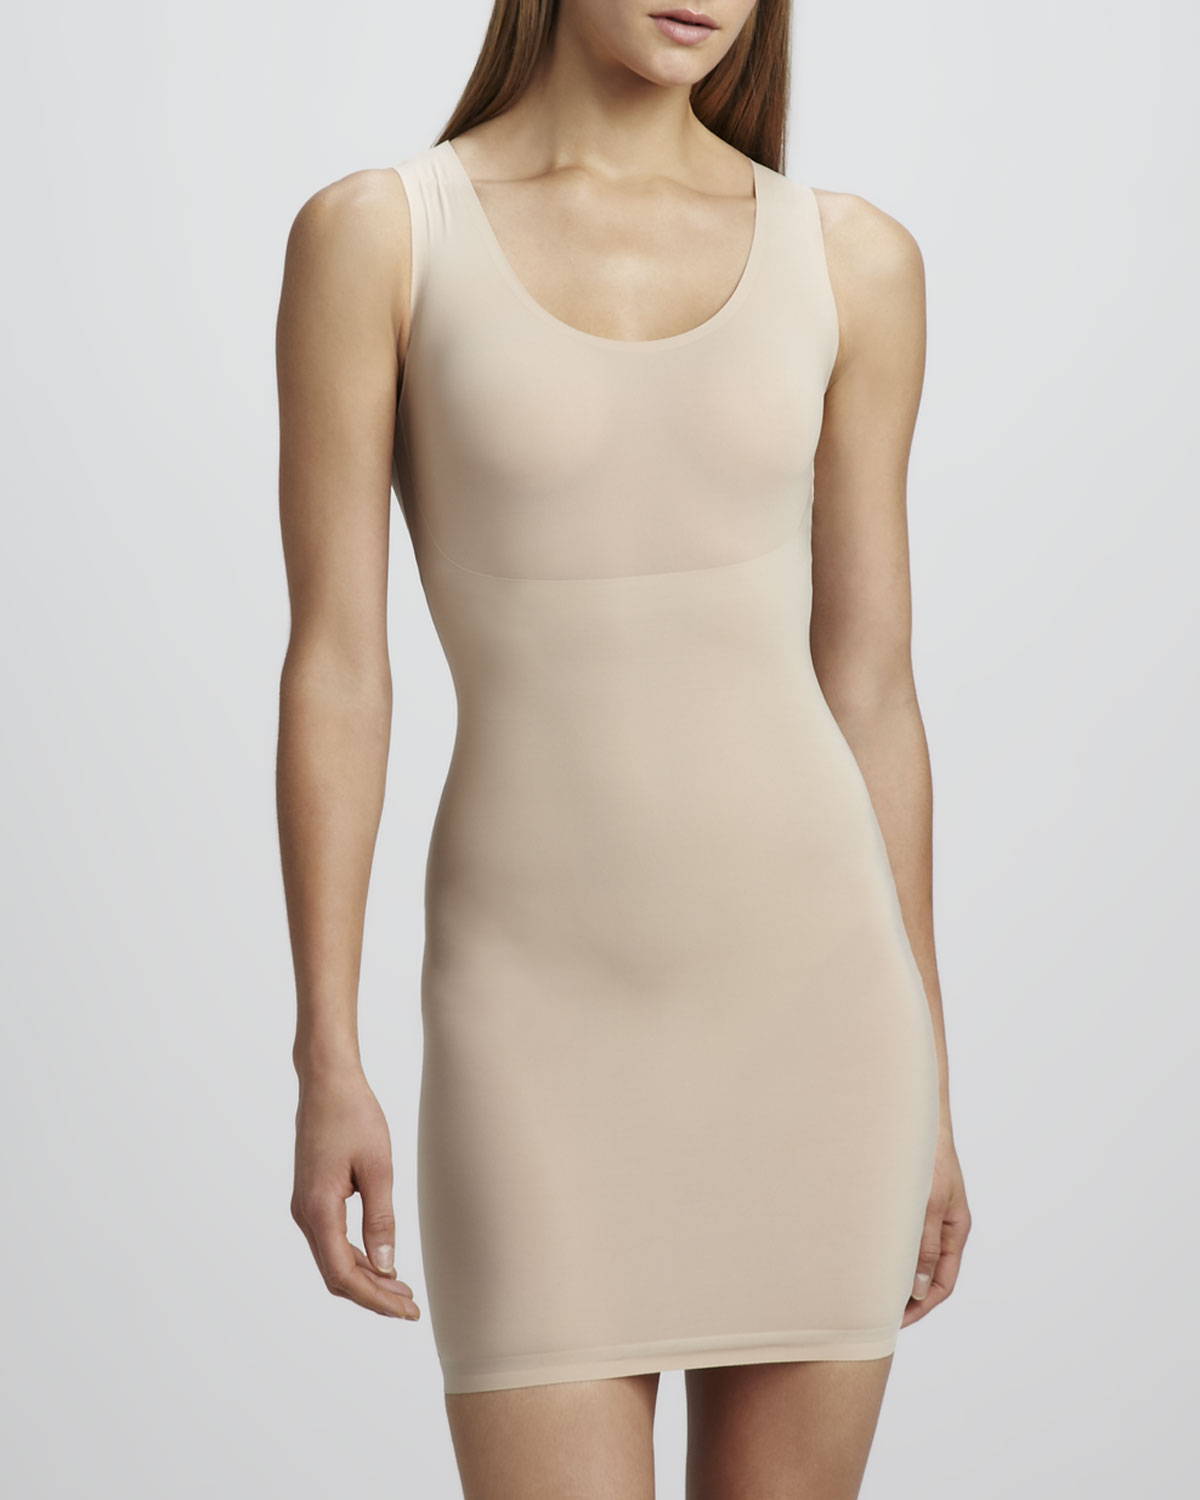 Lyst Spanx Trust Your Thinstincts Slip In Natural